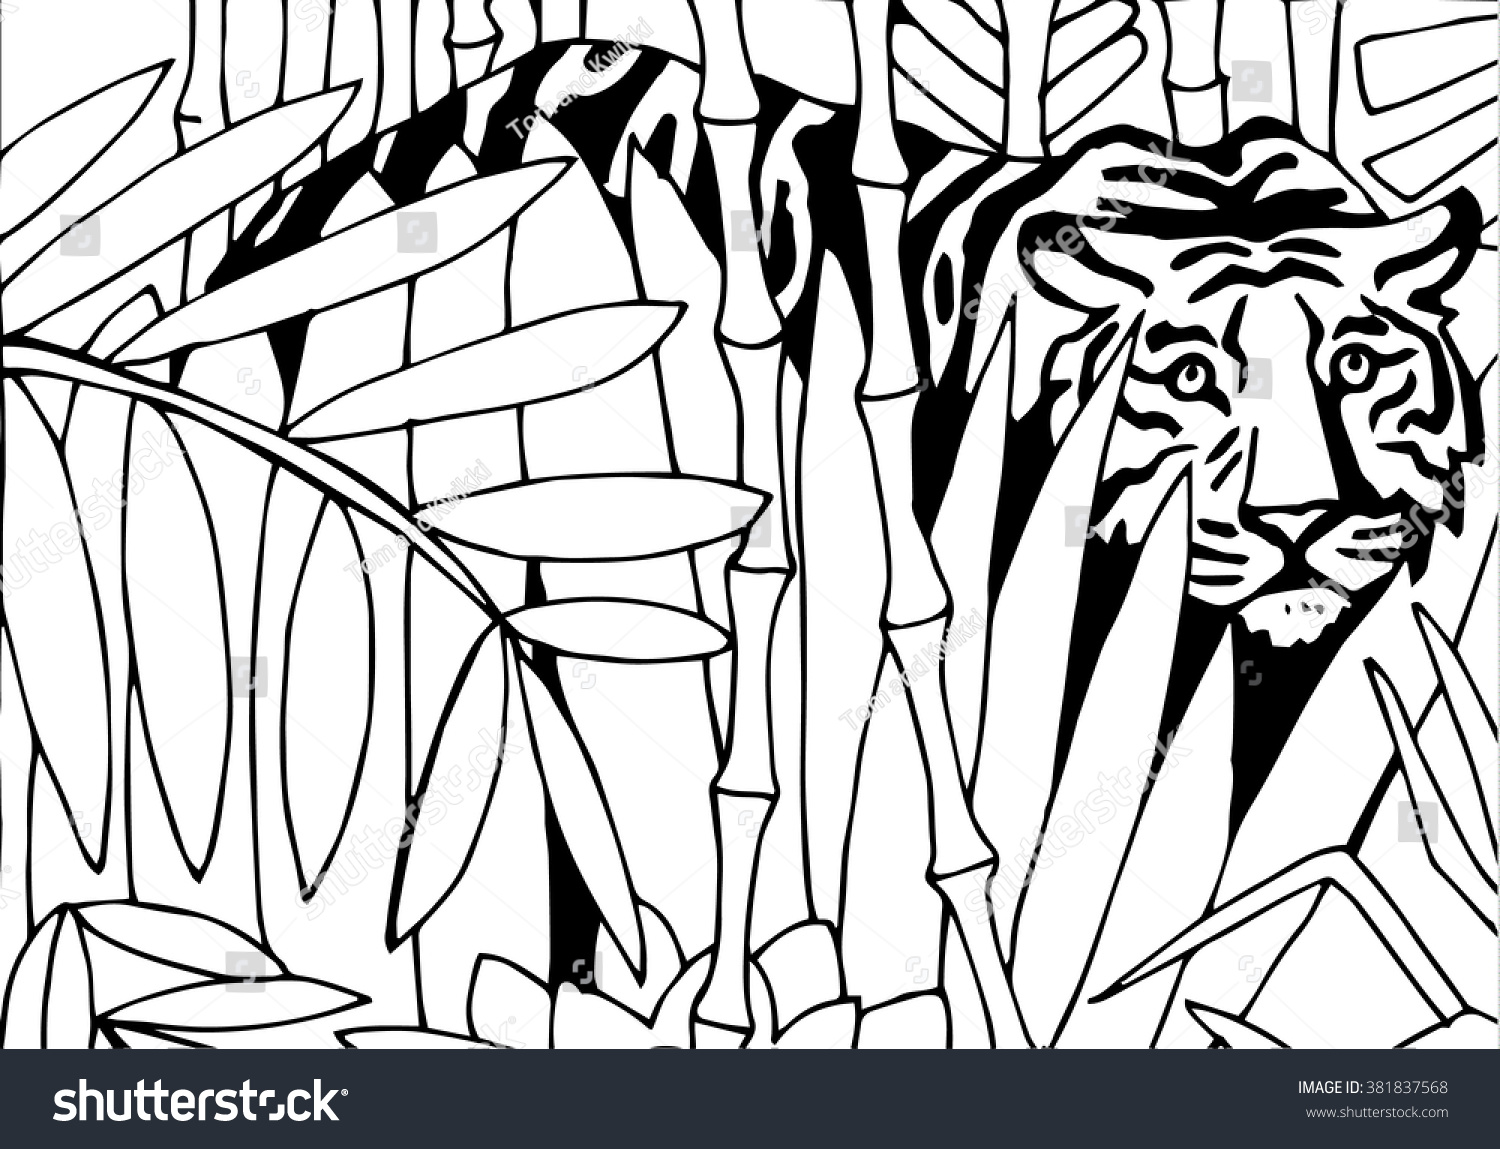 jungle book tiger coloring pages - photo#41